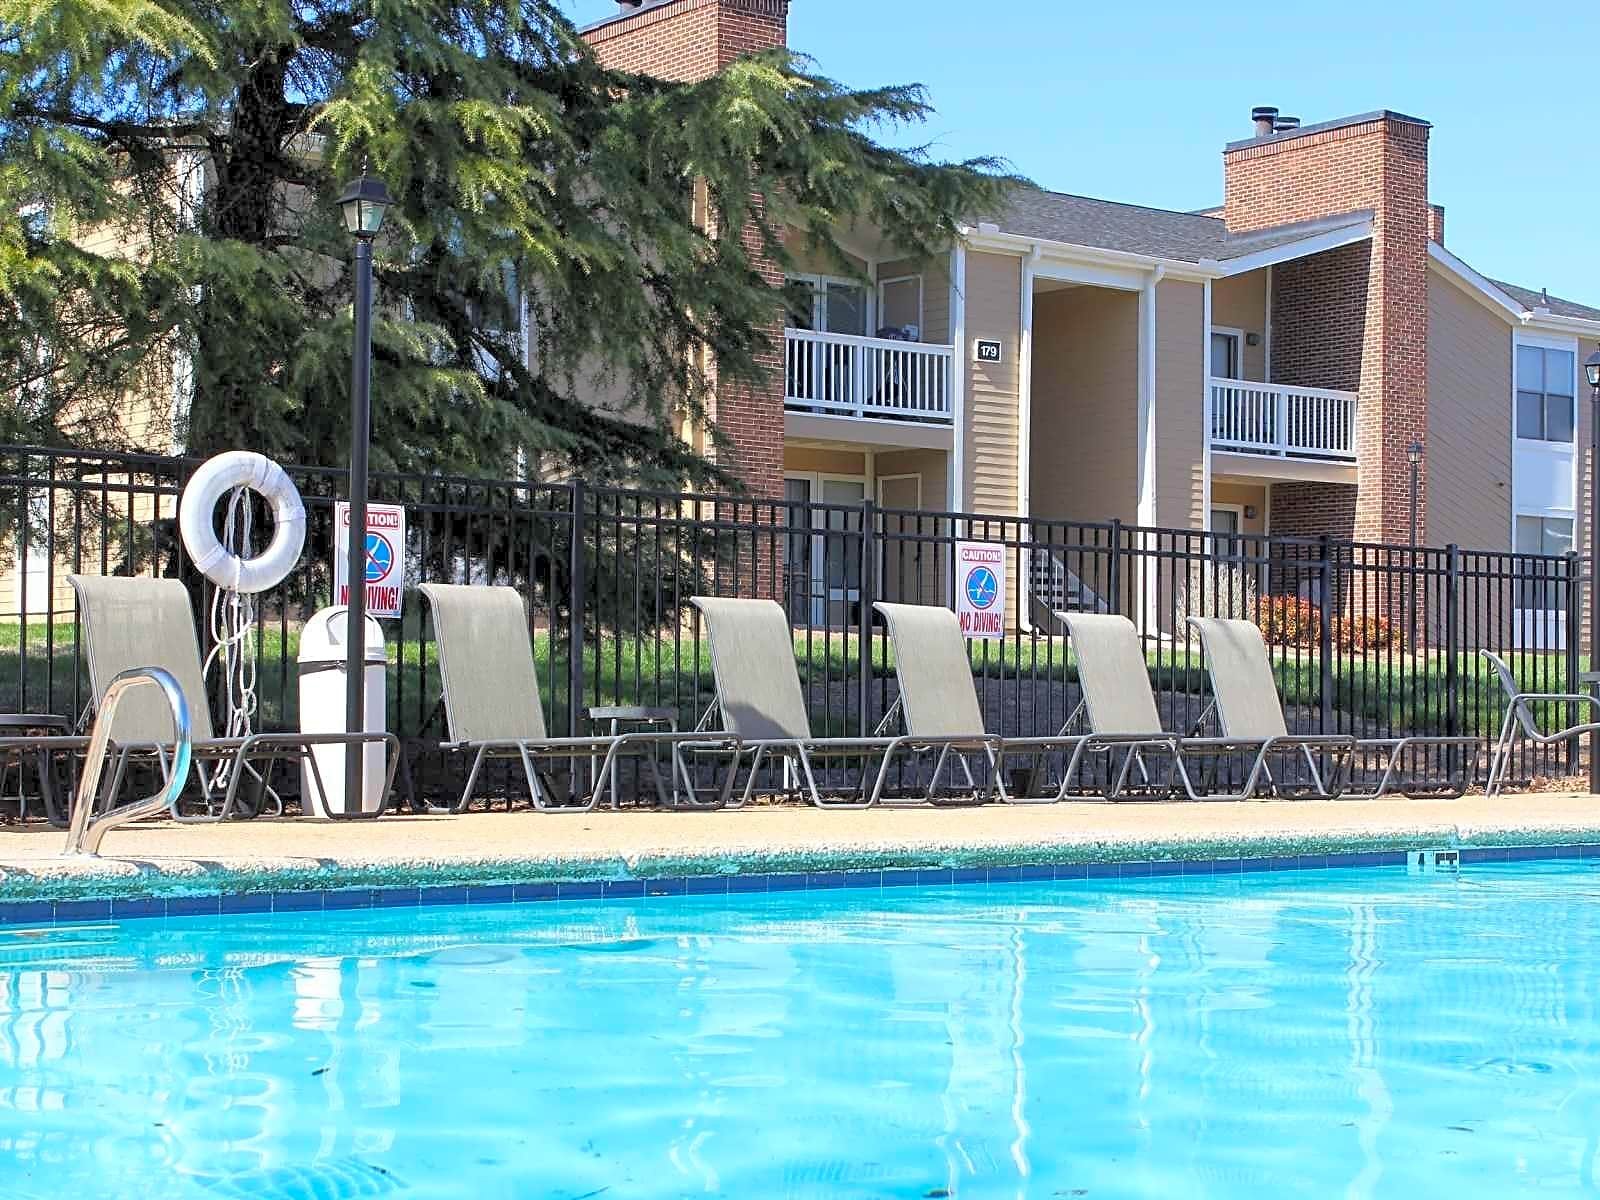 Apartments Near HPU Fox Hollow Apartments for High Point University Students in High Point, NC